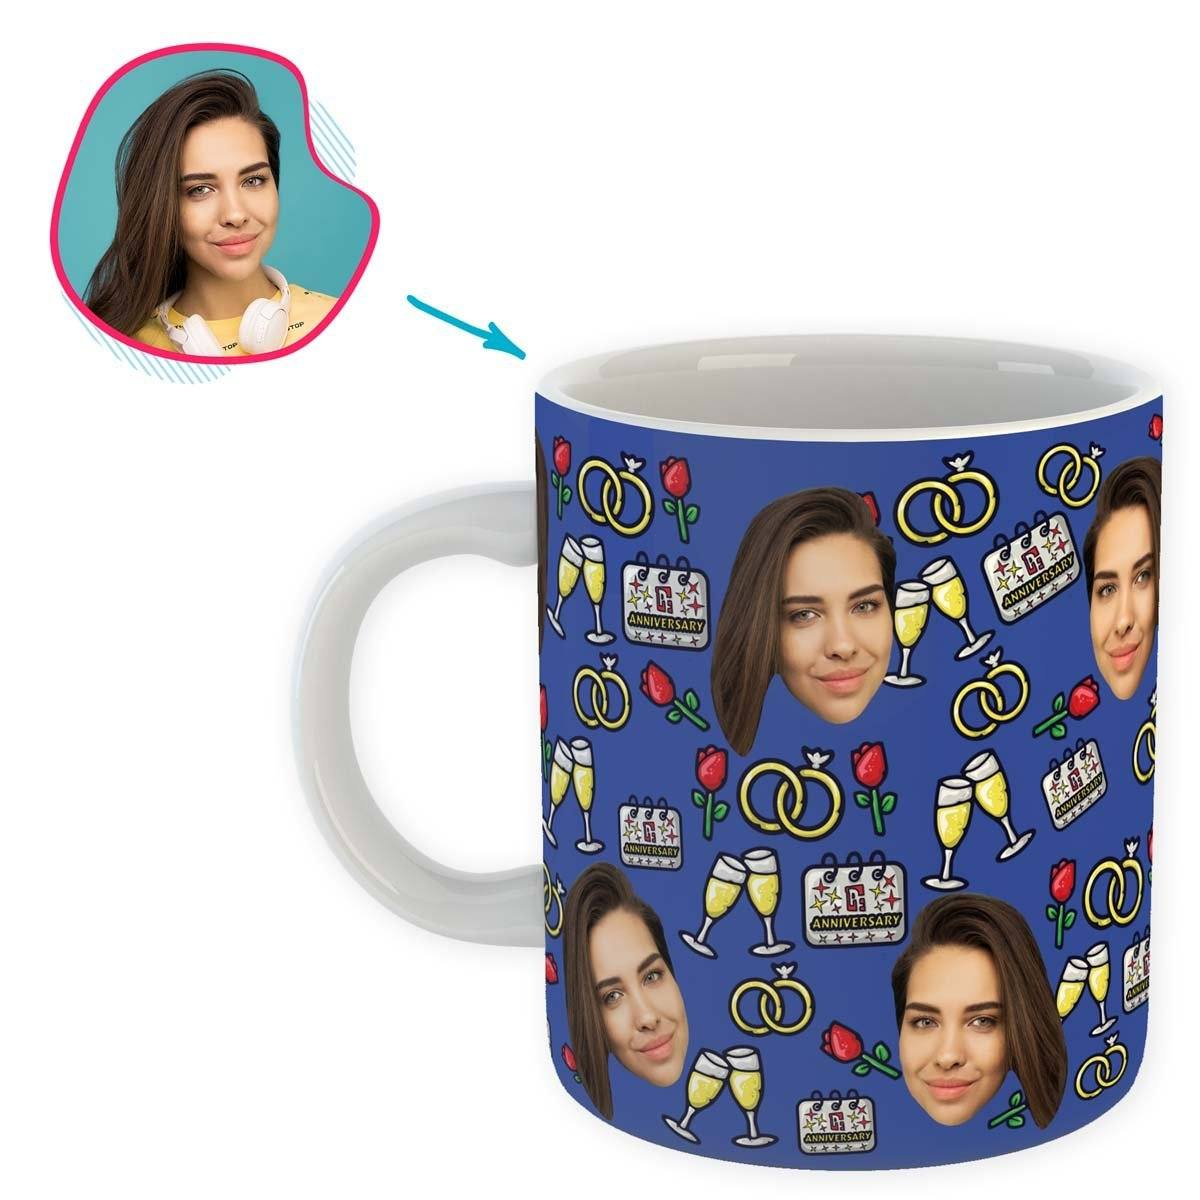 Darkblue Anniversary personalized mug with photo of face printed on it